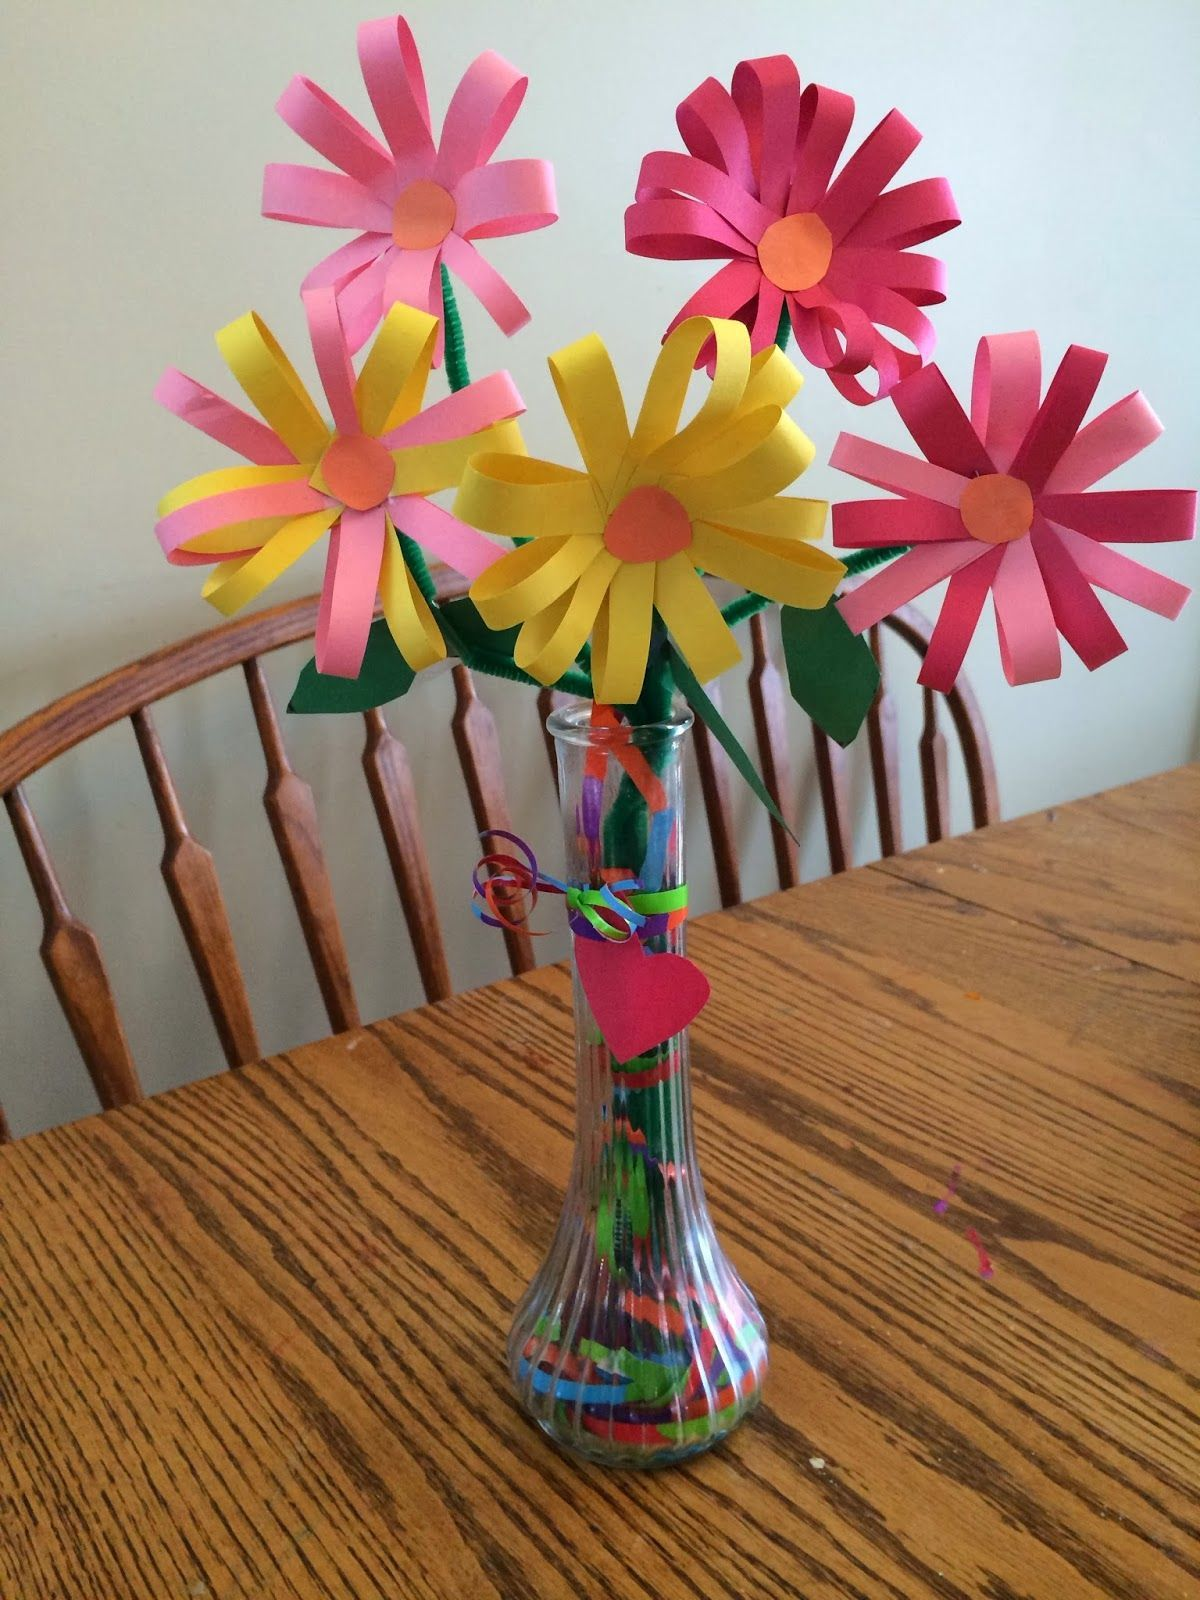 33+ Craft Ideas Using Construction Paper ⋆ crafttel.com #constructionpaperflowers